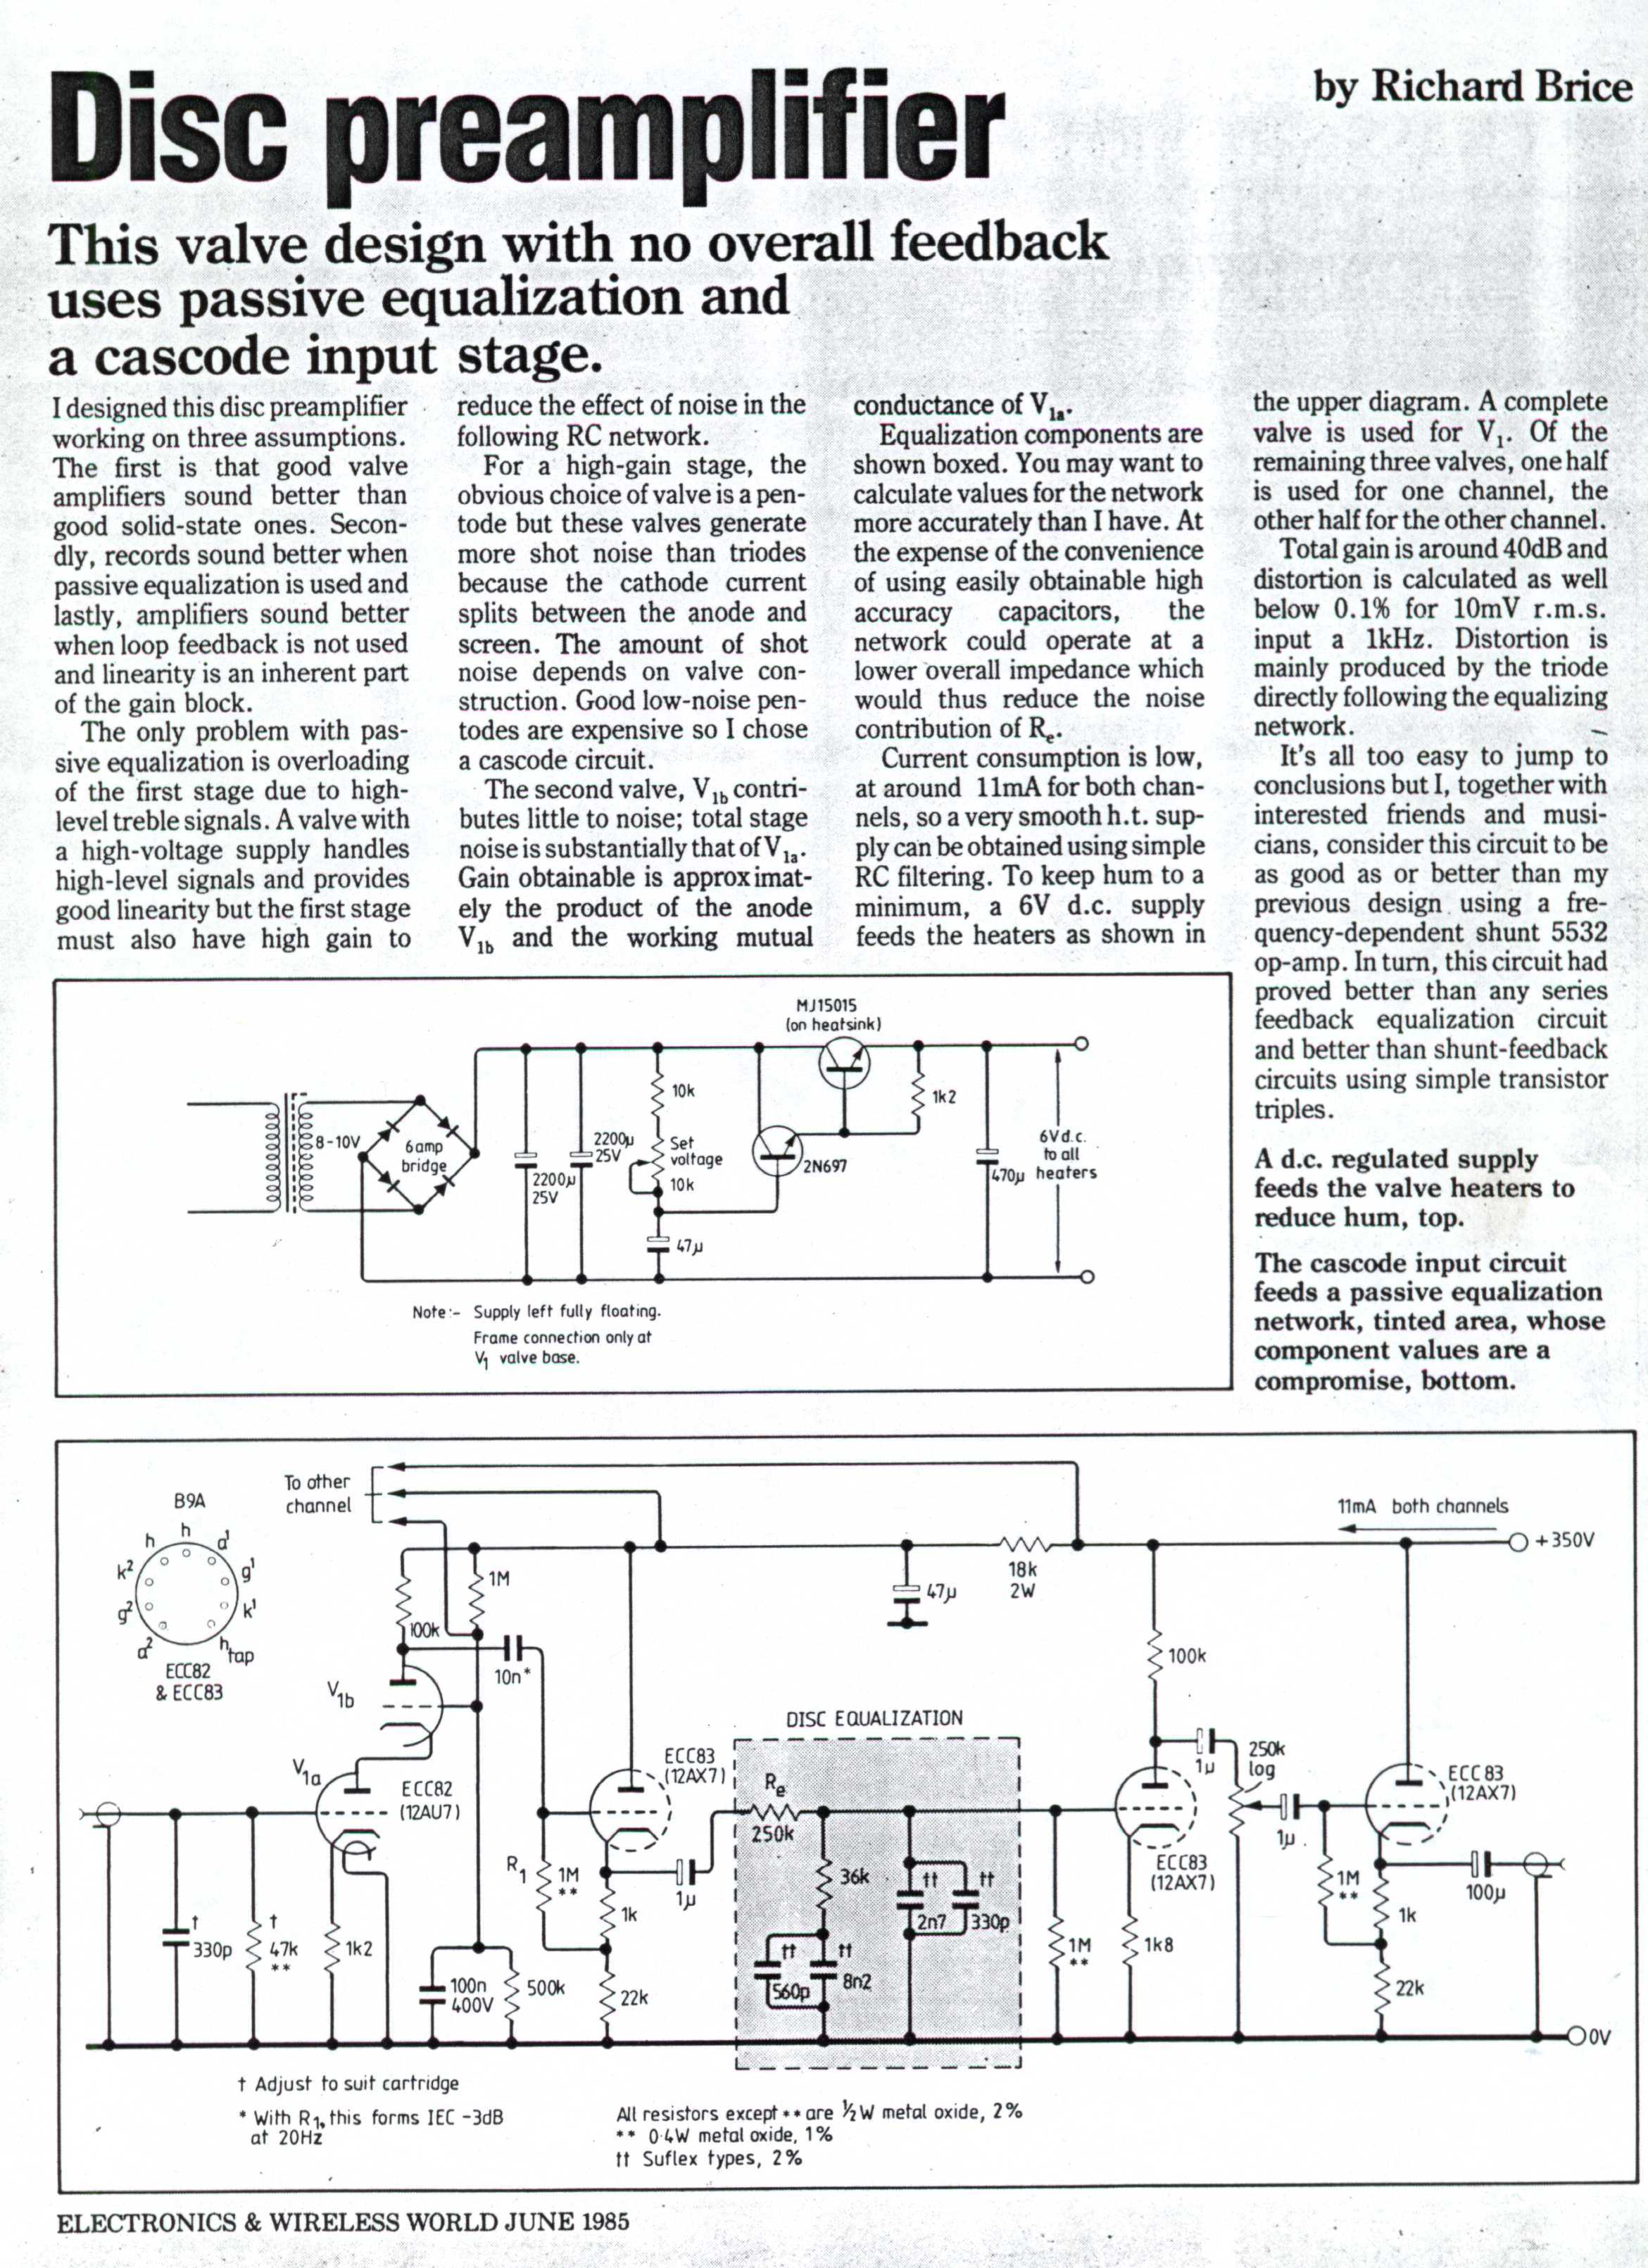 Preamp Passive Baxandall Tone Control 2 Band Equalizer Circuit Schematic Phono Equaliser Pre Amplifier Richard Brice Design Courtesy Electronics World Magazine 1985